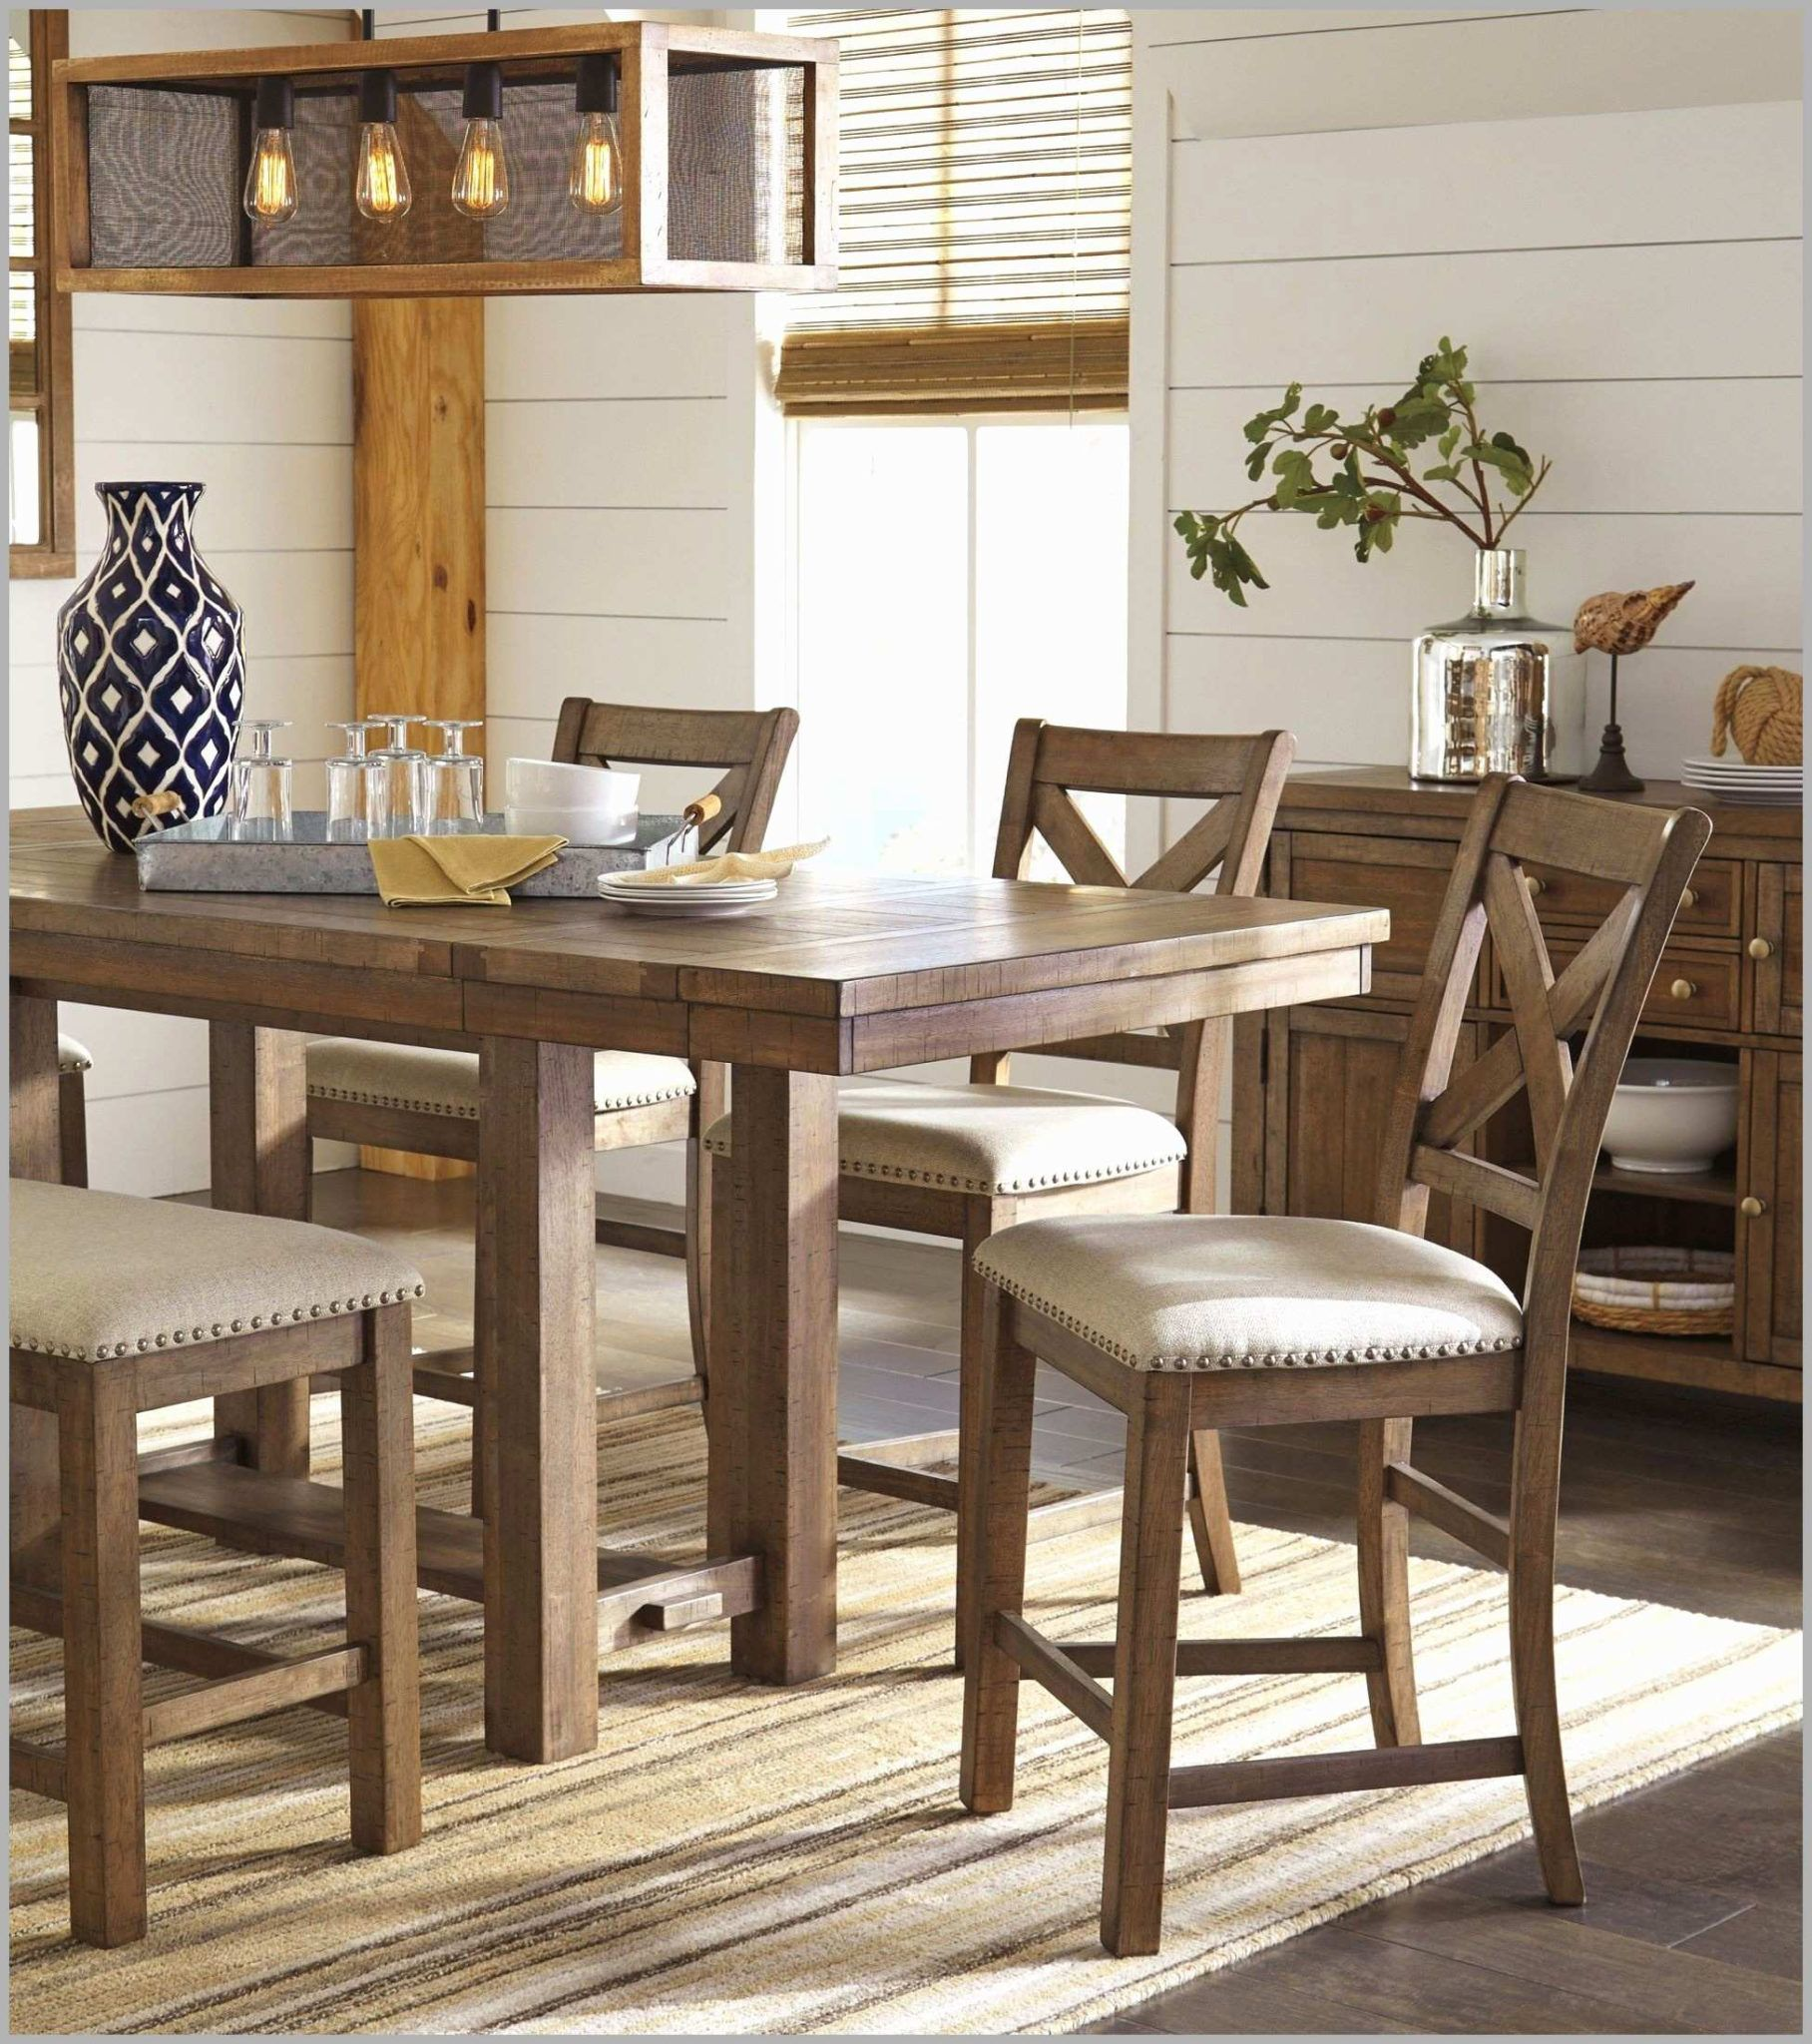 Excellent Lighting Over Round Kitchen Table Kitchentable Dining